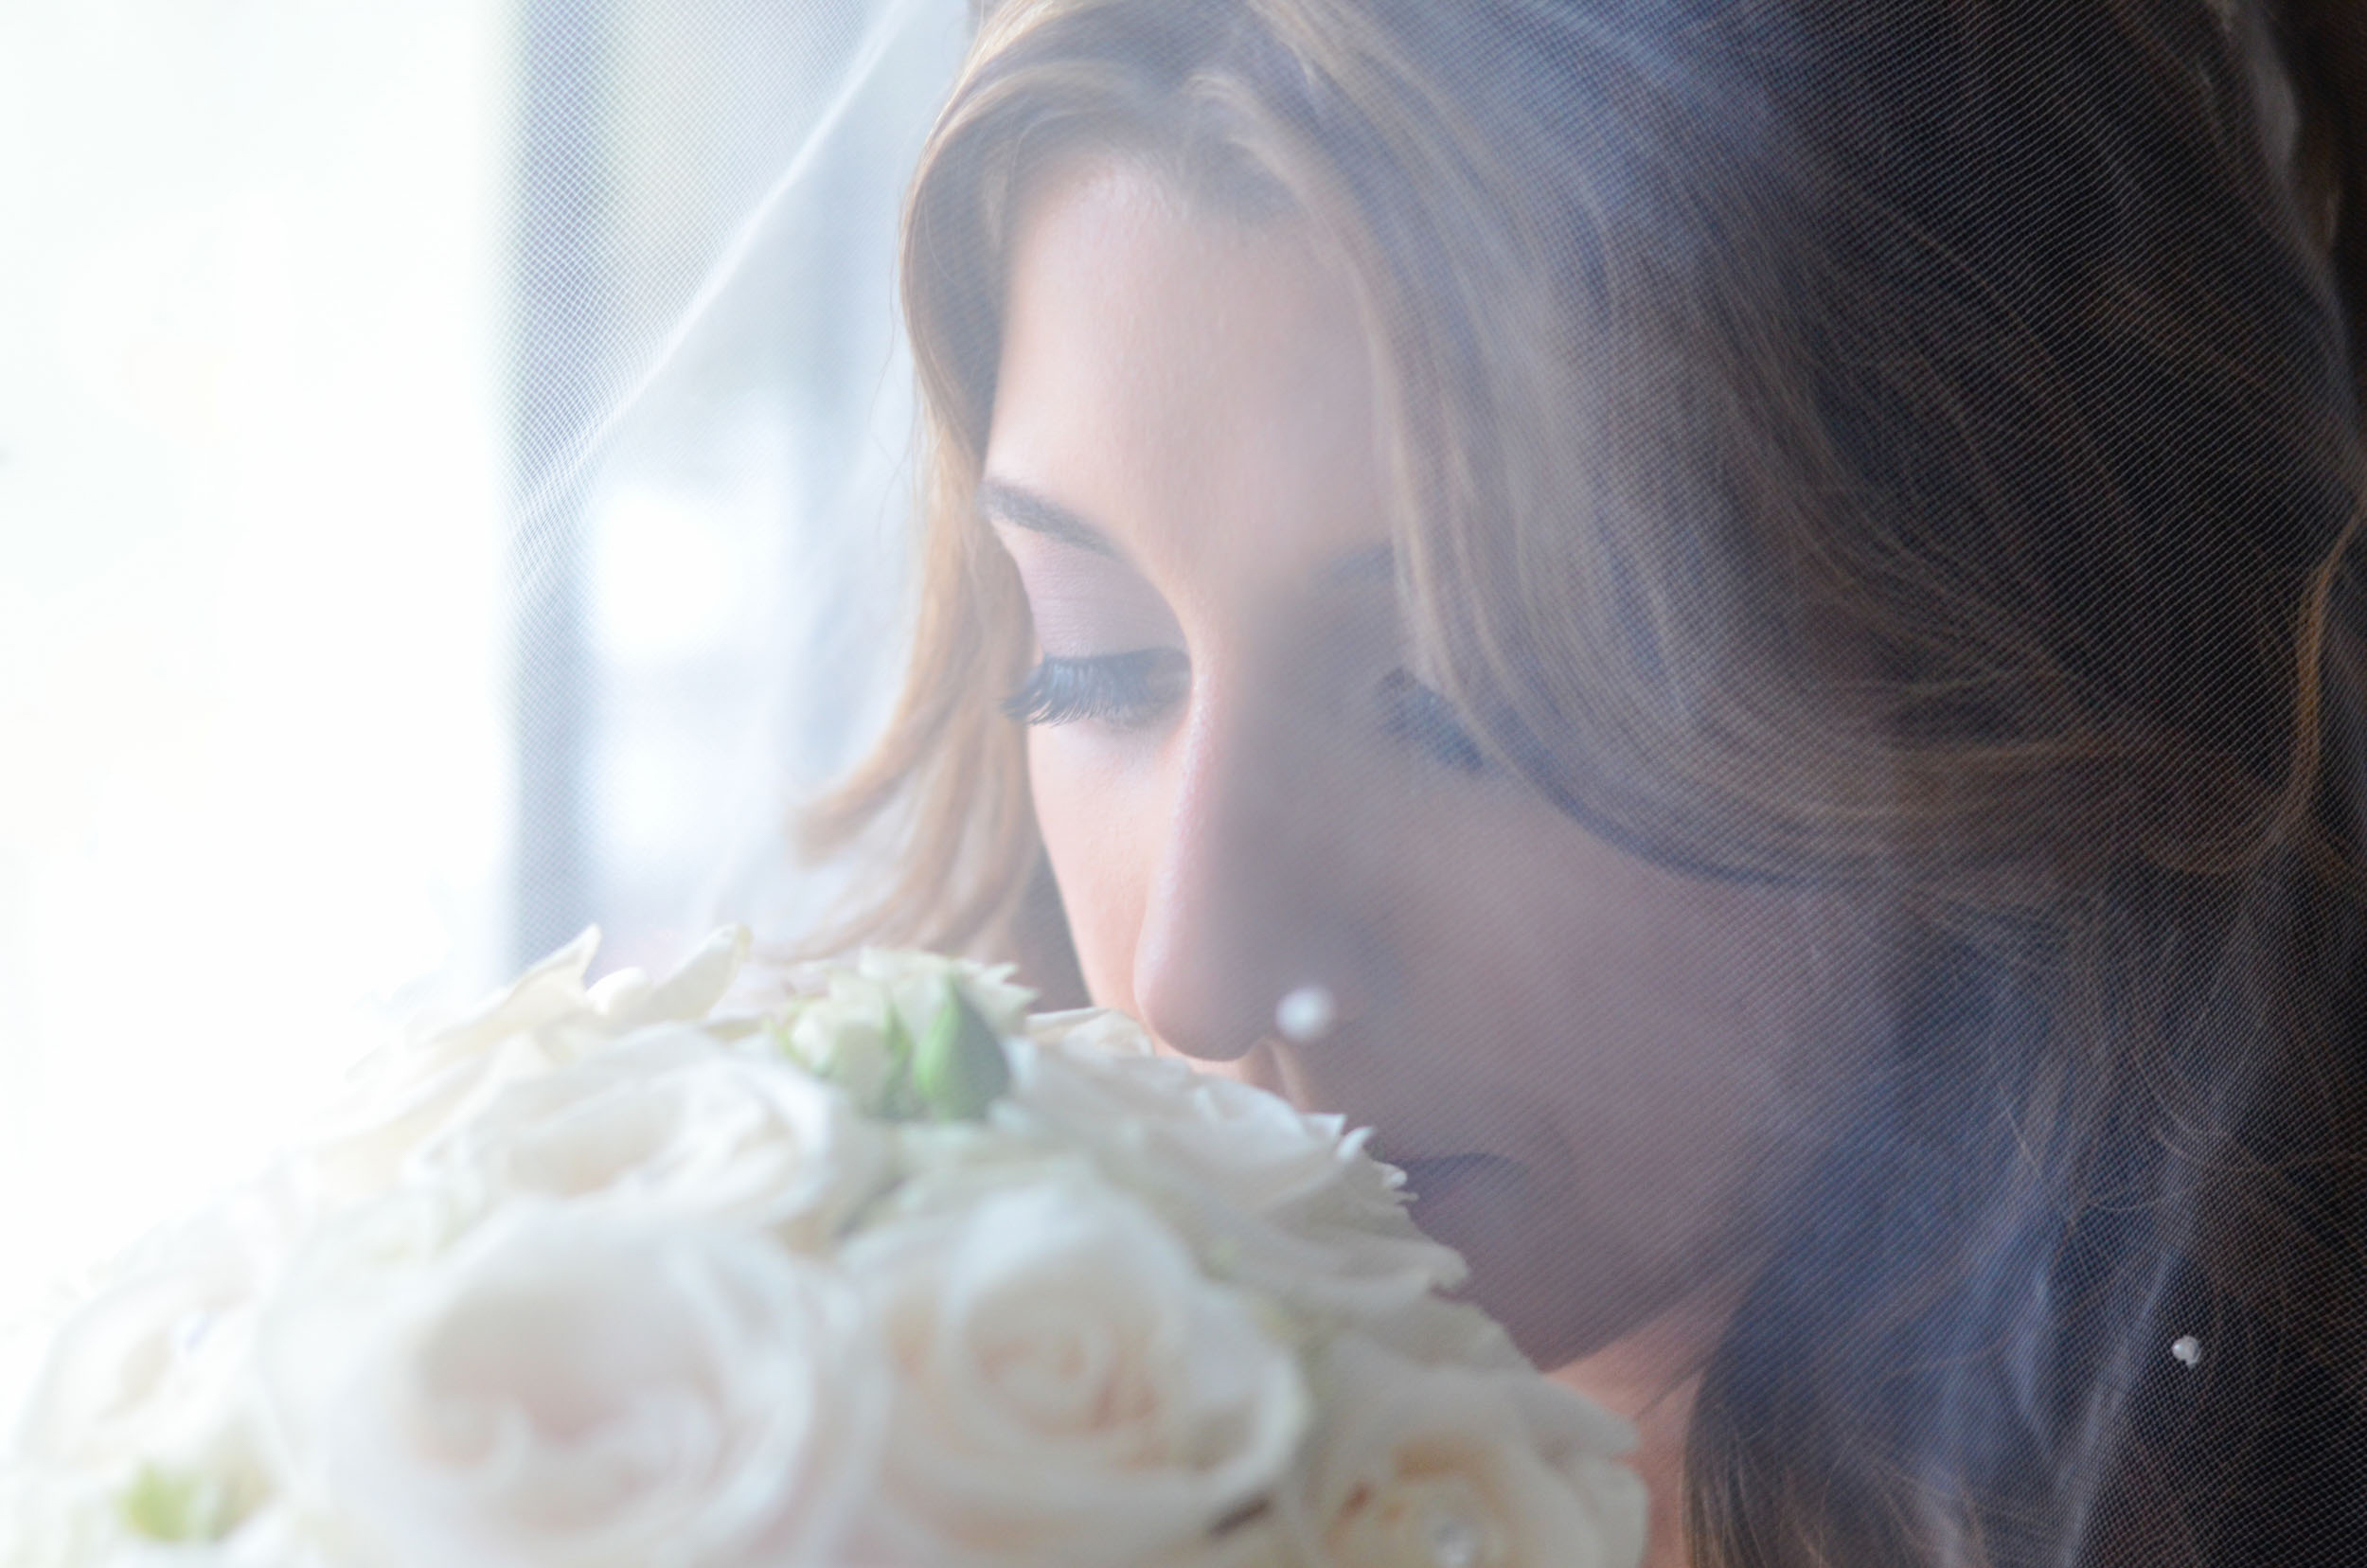 bride smelling flowers under veil by window